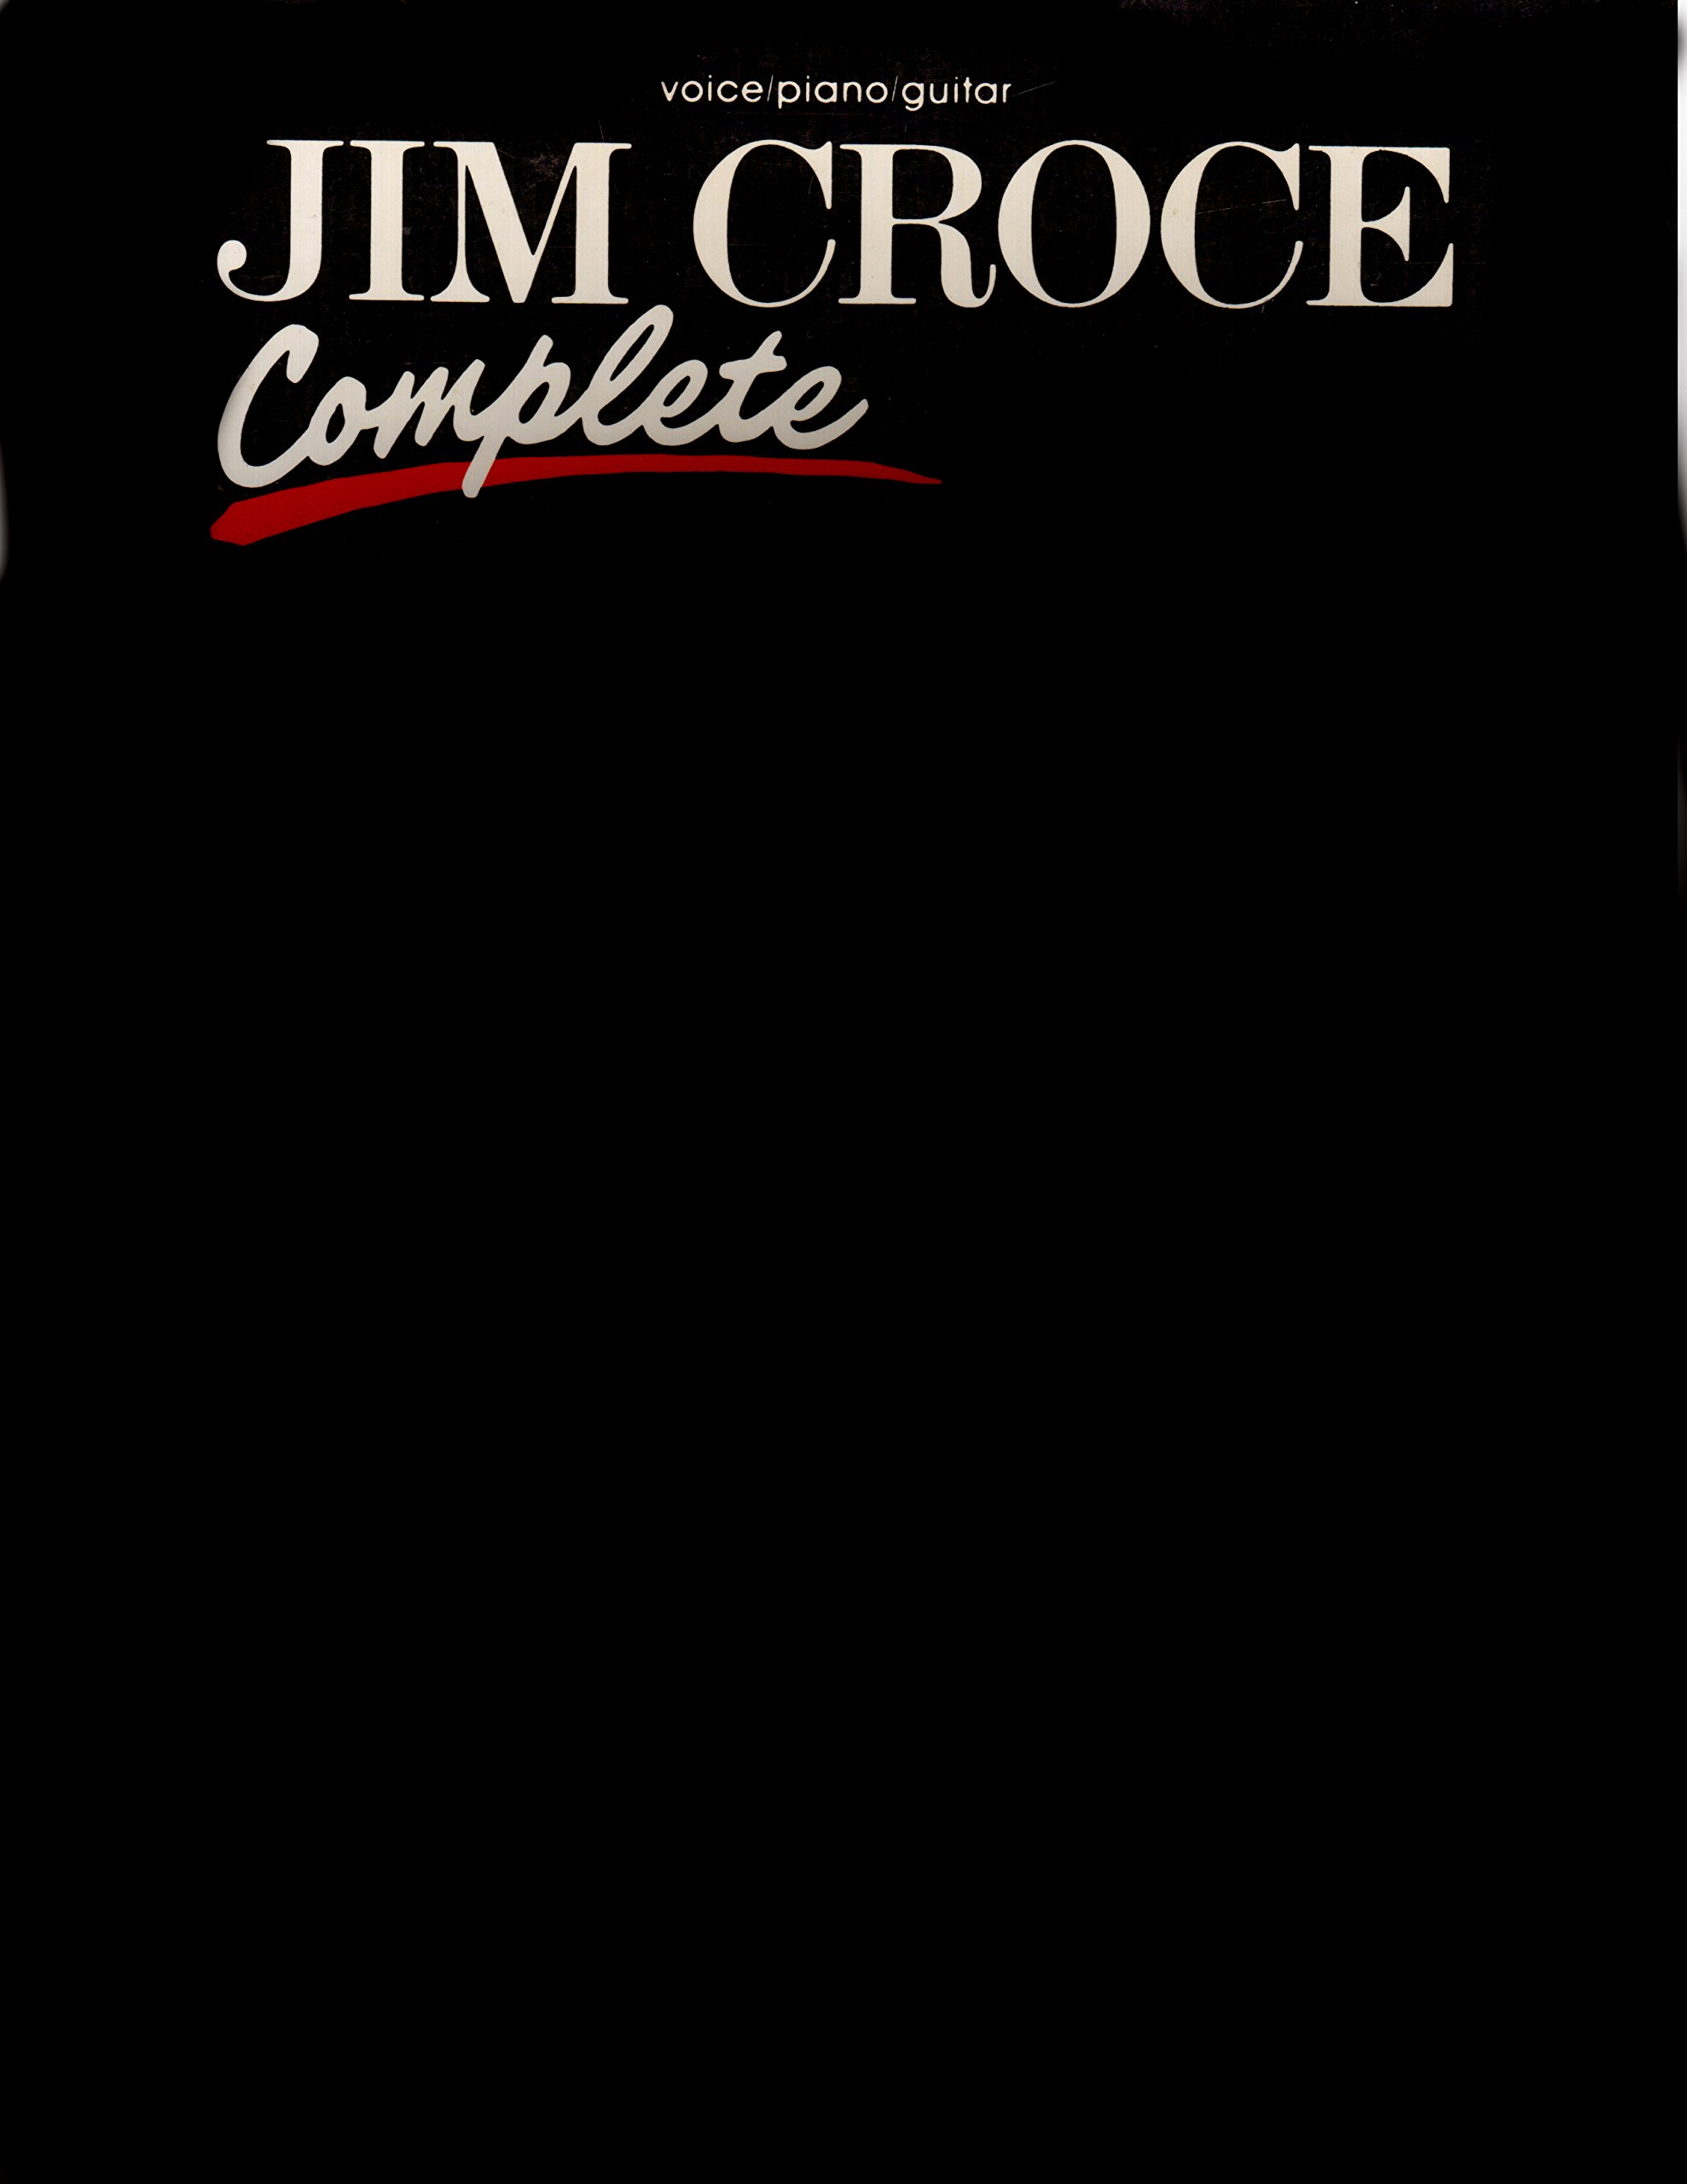 Jim Croce -- Complete: Piano/Vocal/Chords